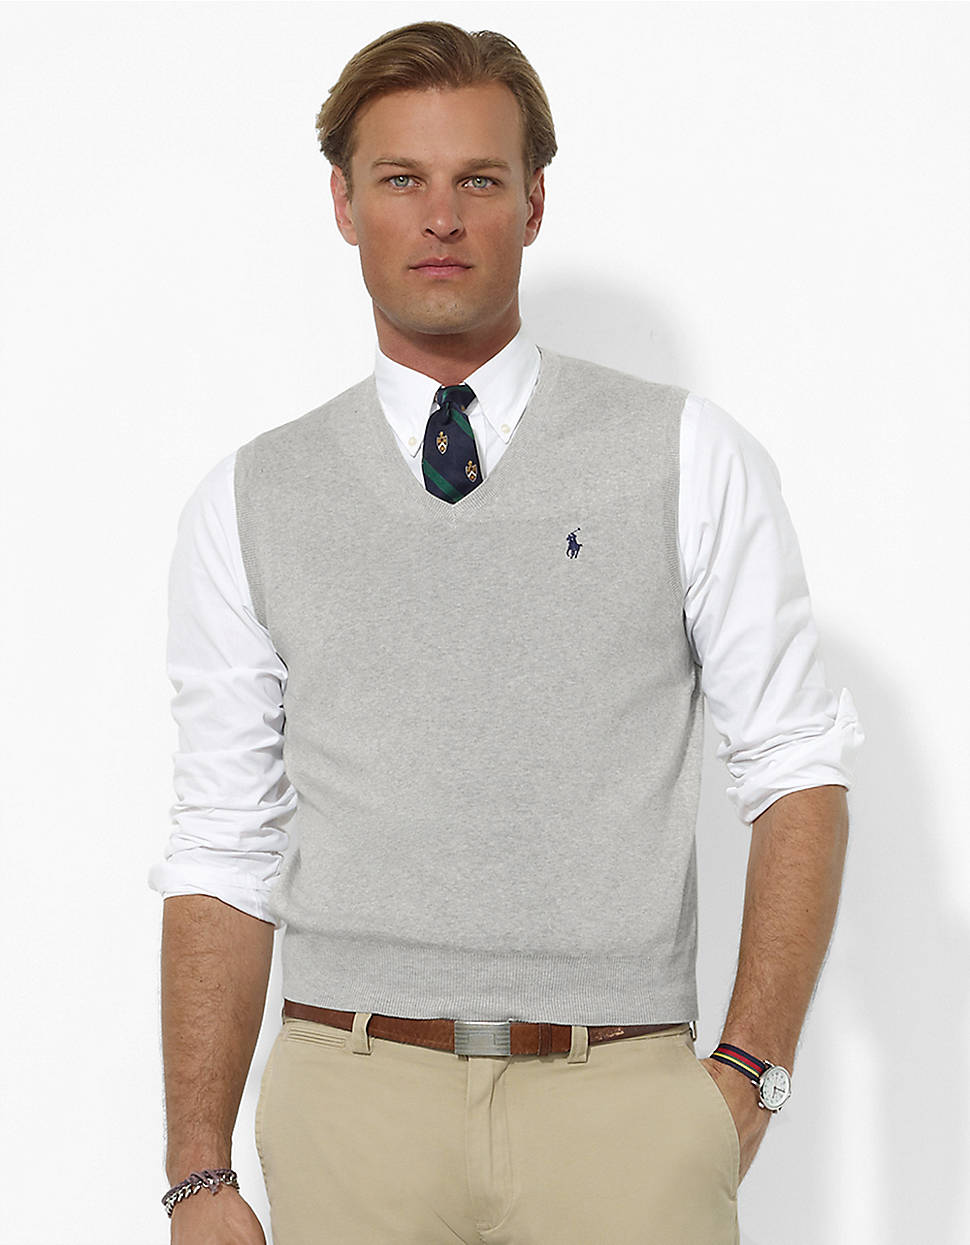 Gray Sweater Vest Mens - Cashmere Sweater England